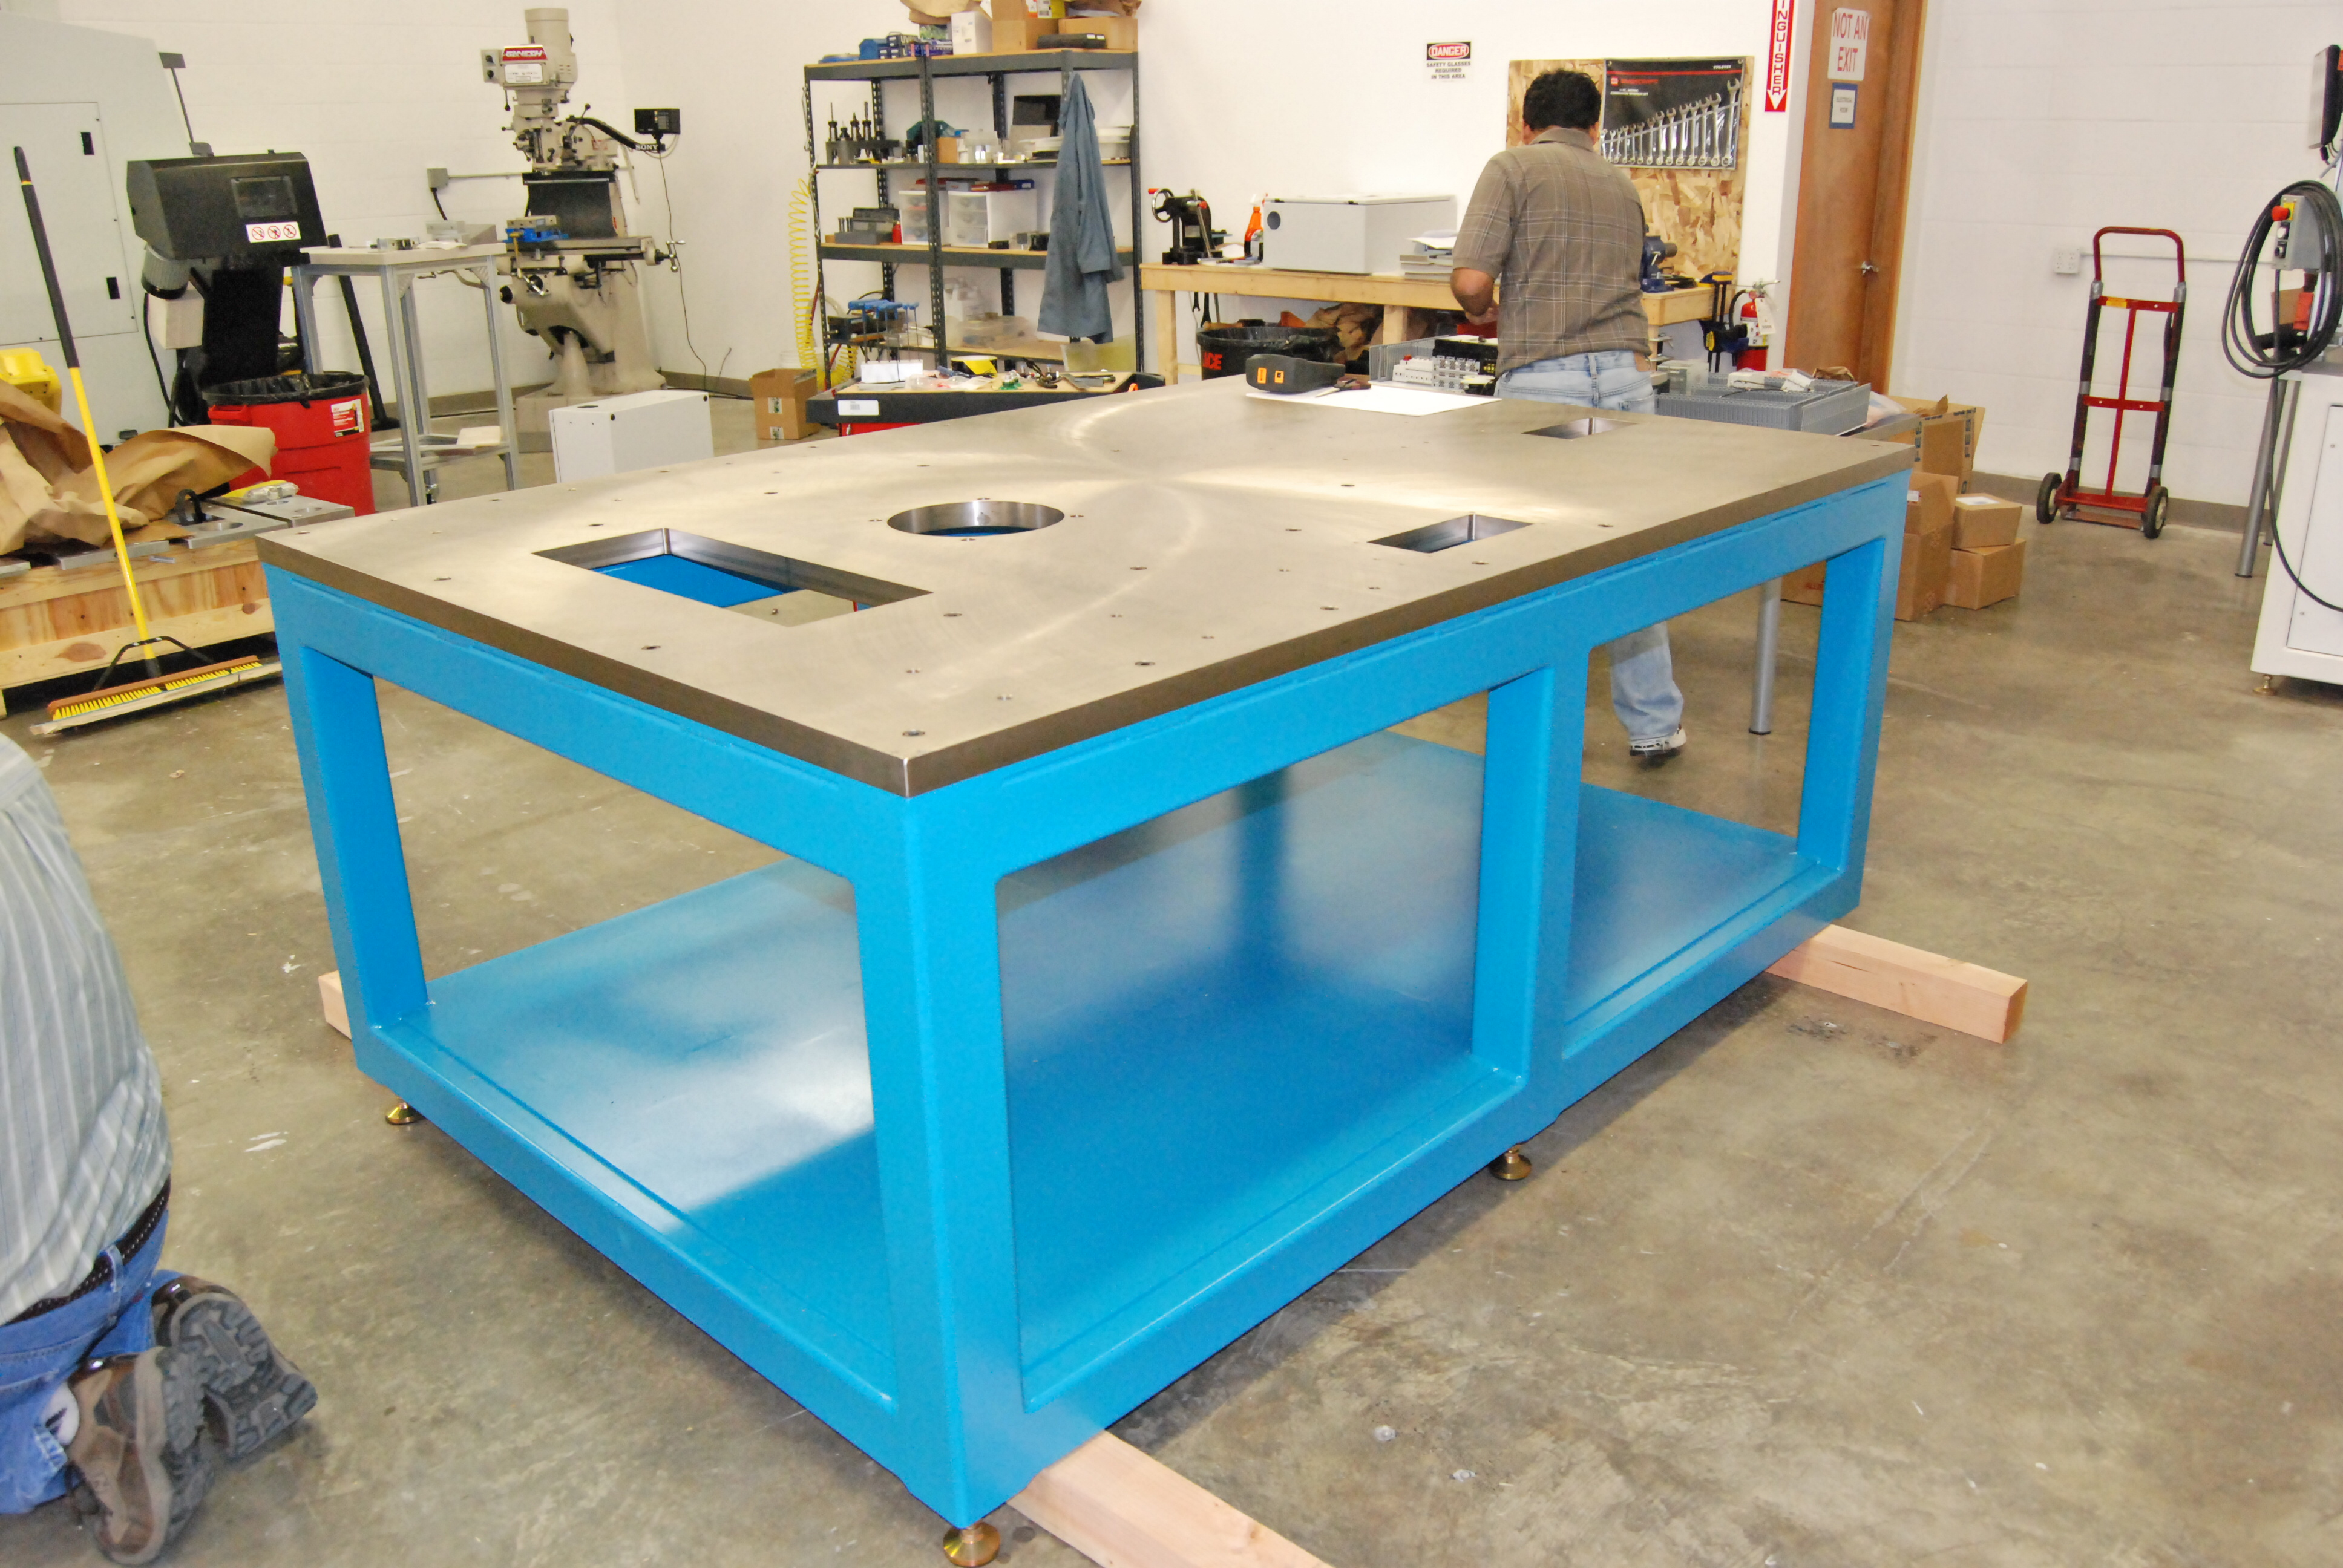 Table Under Construction